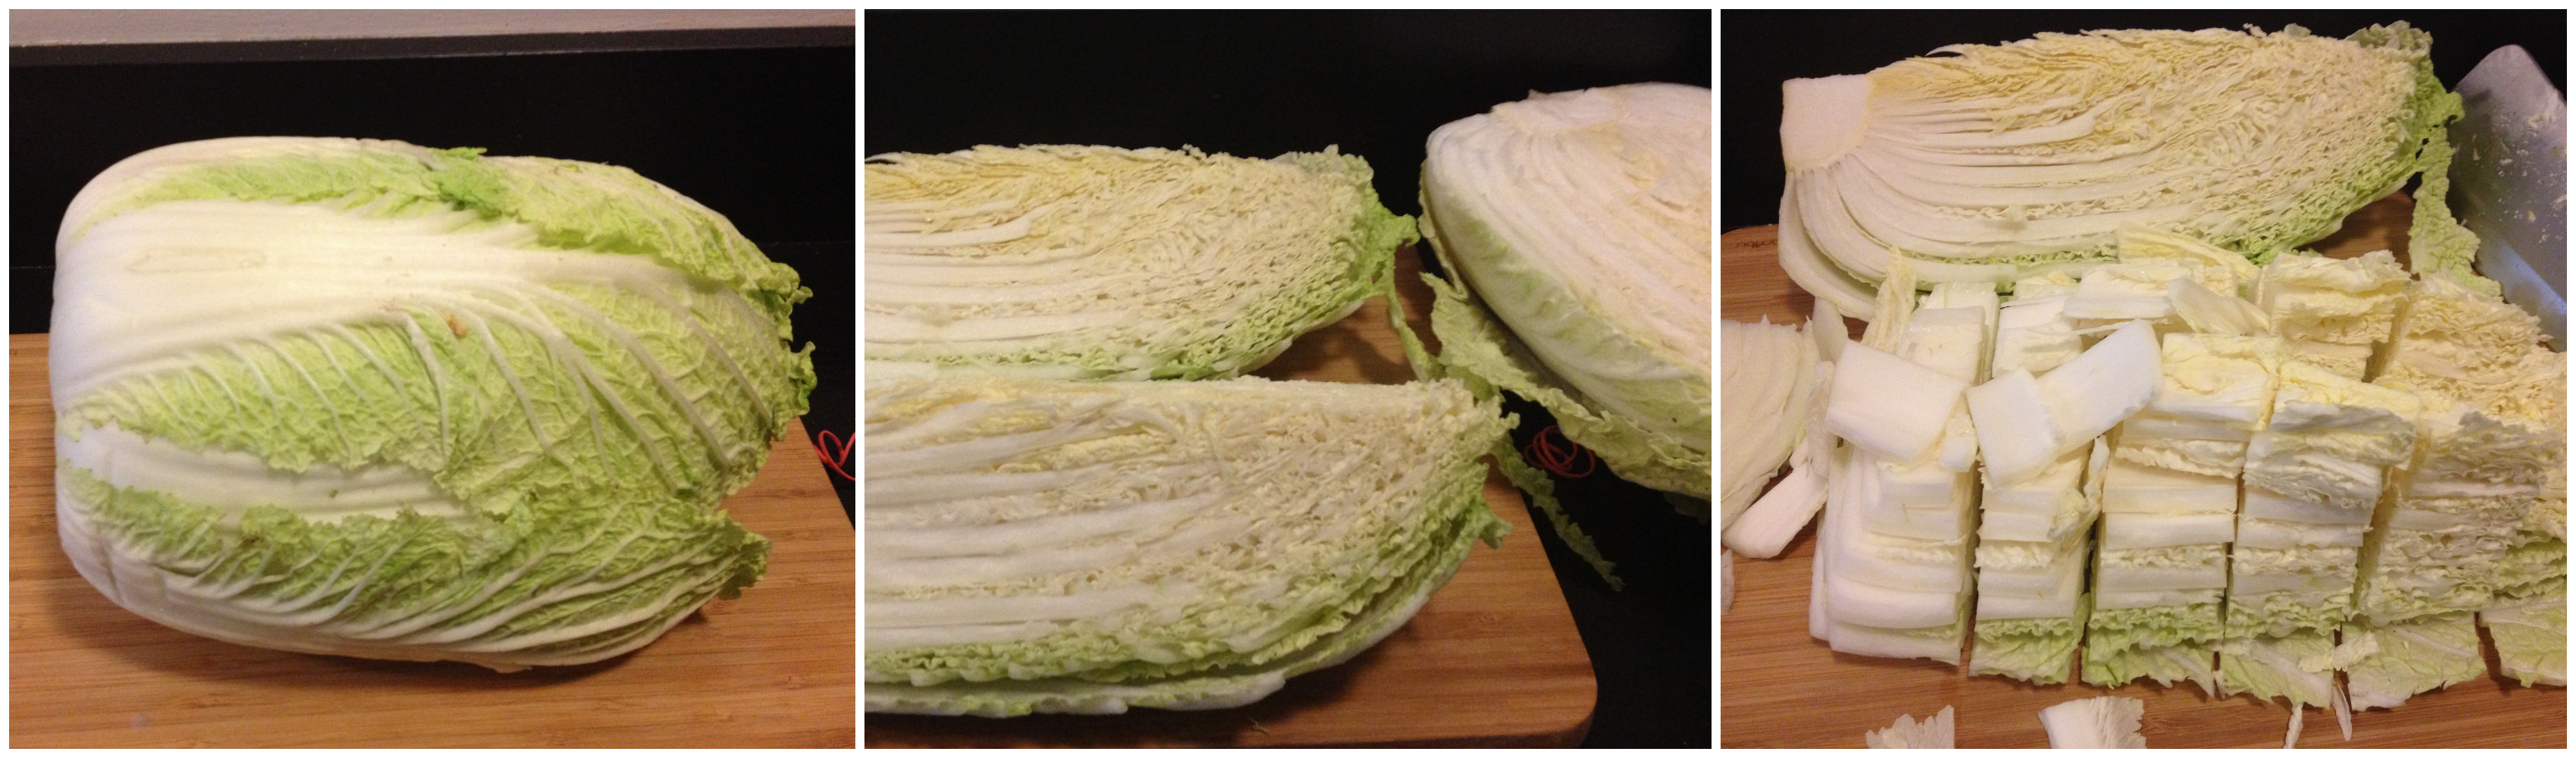 chopping cabbage